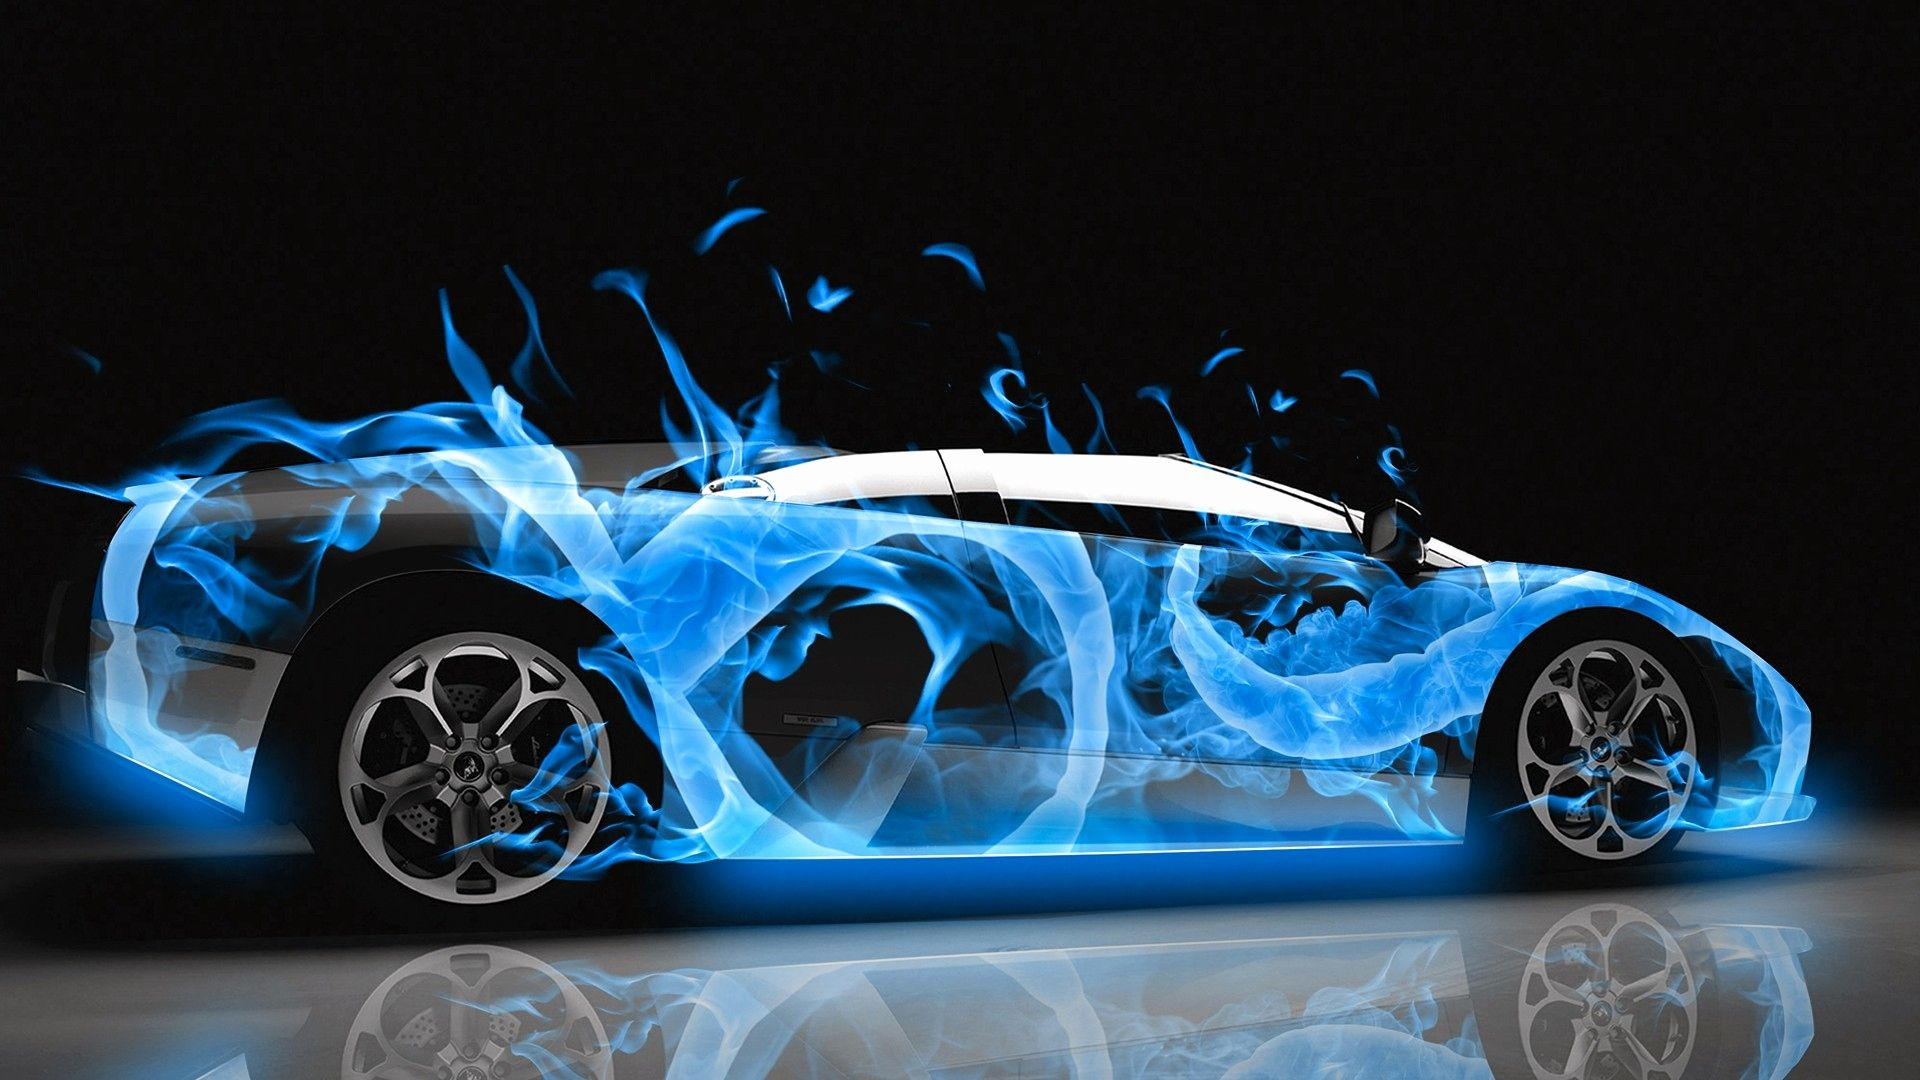 32 Best Free Live Car Wallpapers Wallpaperaccess